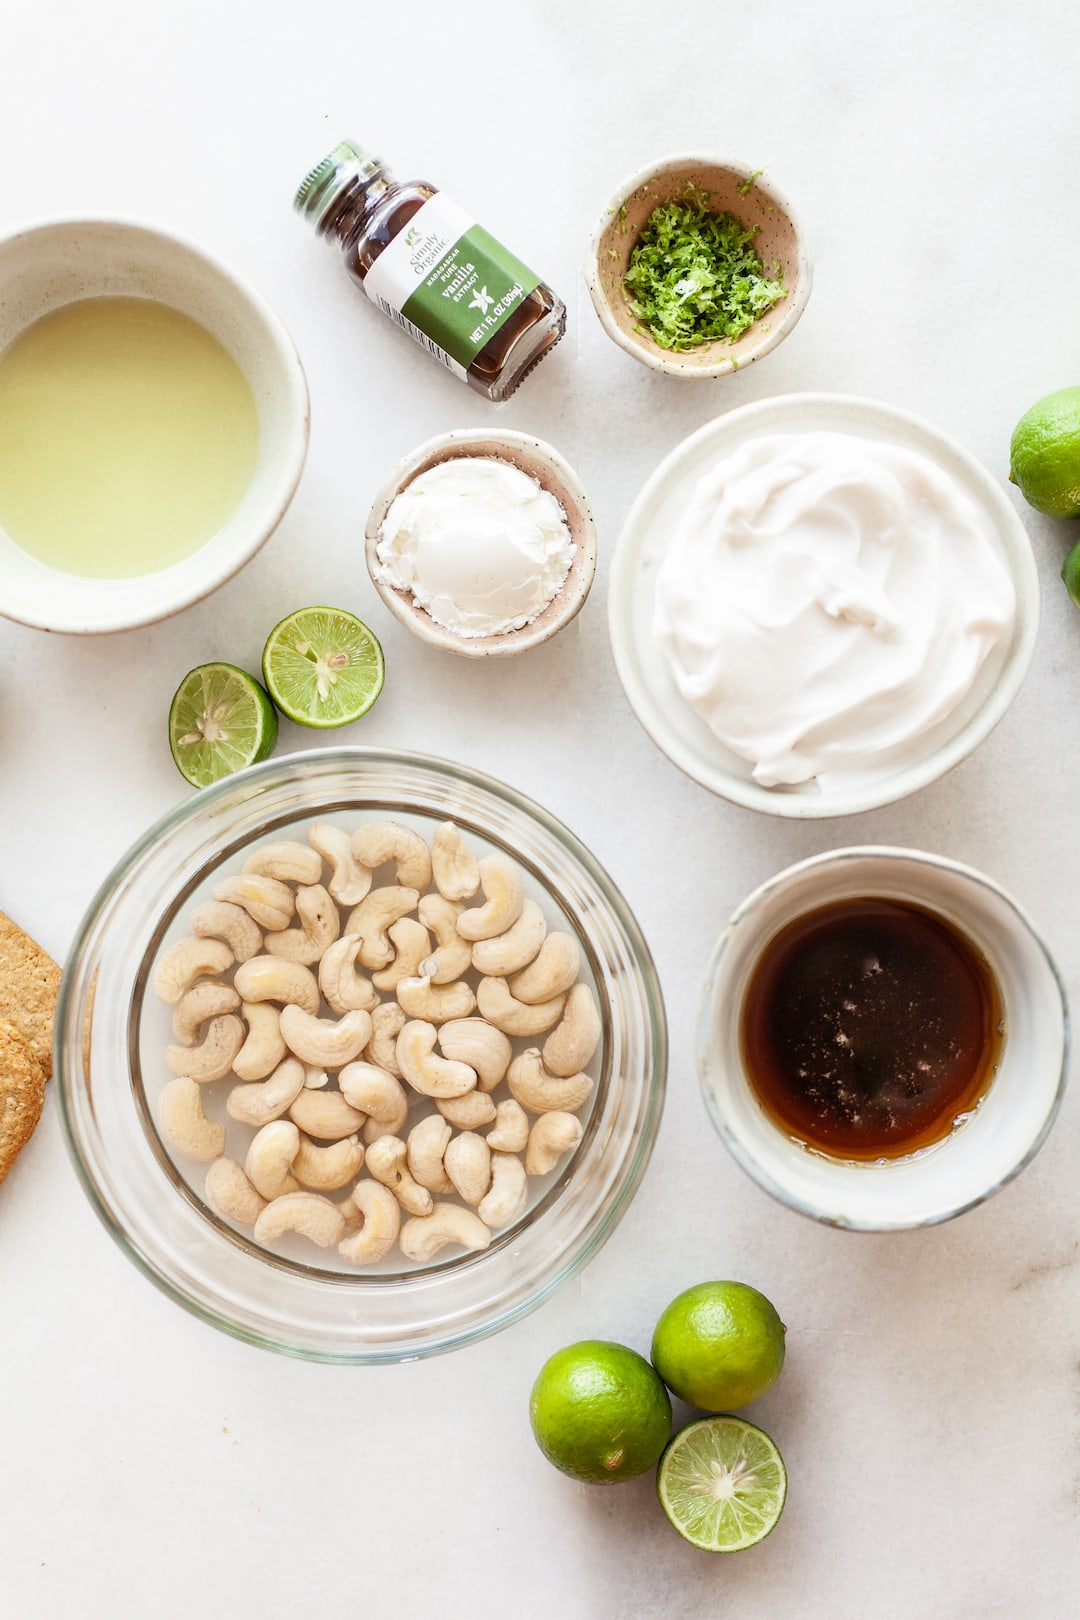 ingredients for vegan key lime pie filling on a marble board